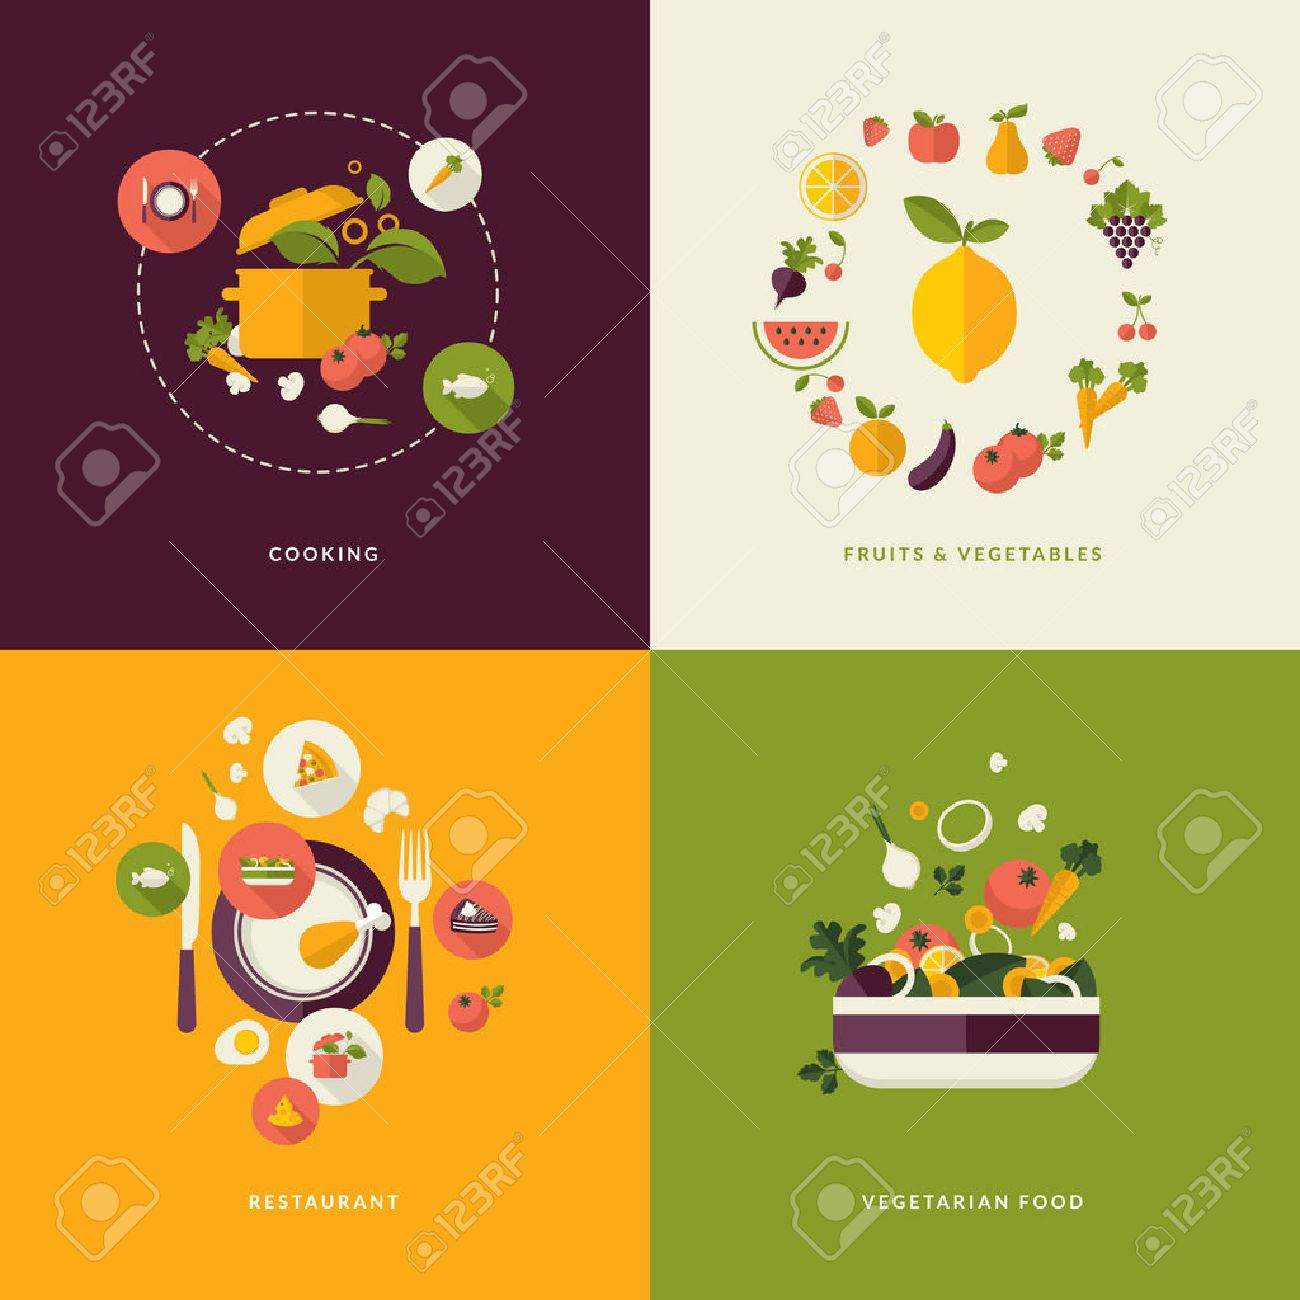 Set of flat design concept icons for food and restaurant Icons for cooking, fruits and vegetables, restaurant and vegetarian food - 26593114